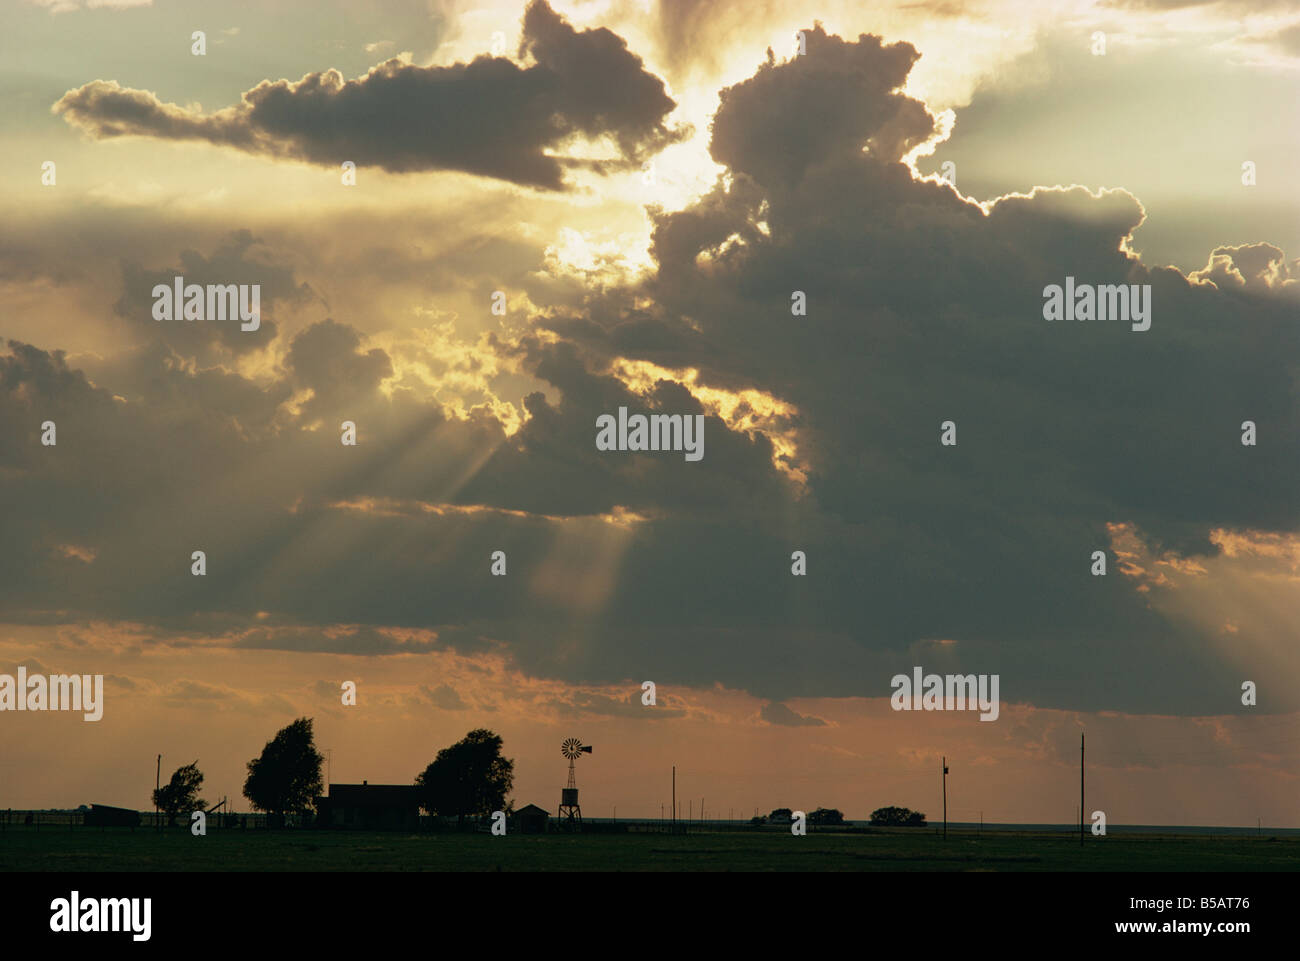 Rays of sun light landscape from behind dark towering clouds - Stock Image